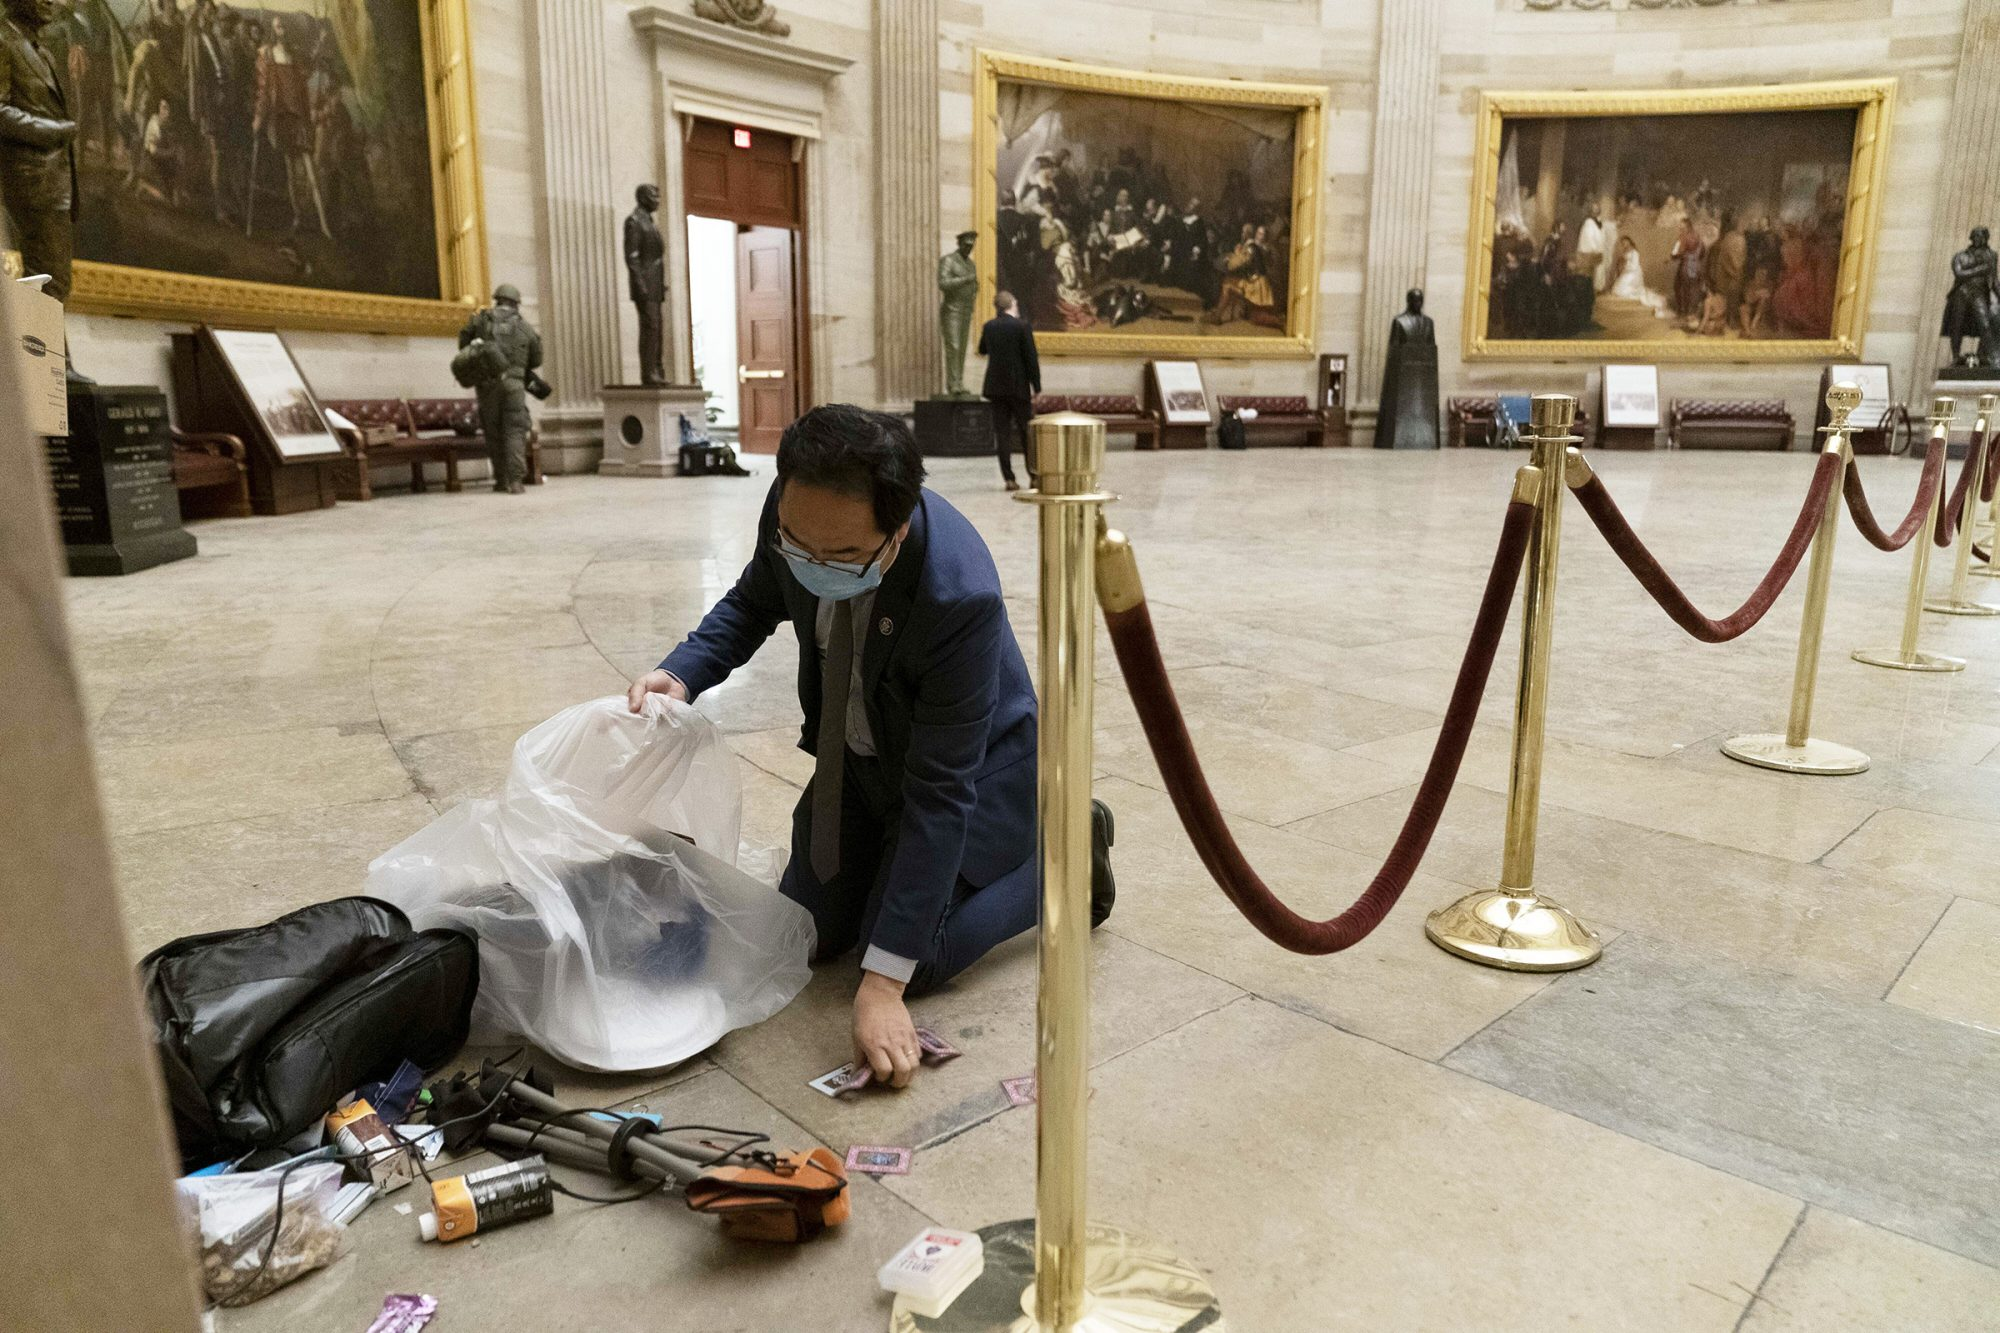 Rep. Andy Kim, D-N.J., cleans up debris and personal belongings strewn across the floor of the Rotunda